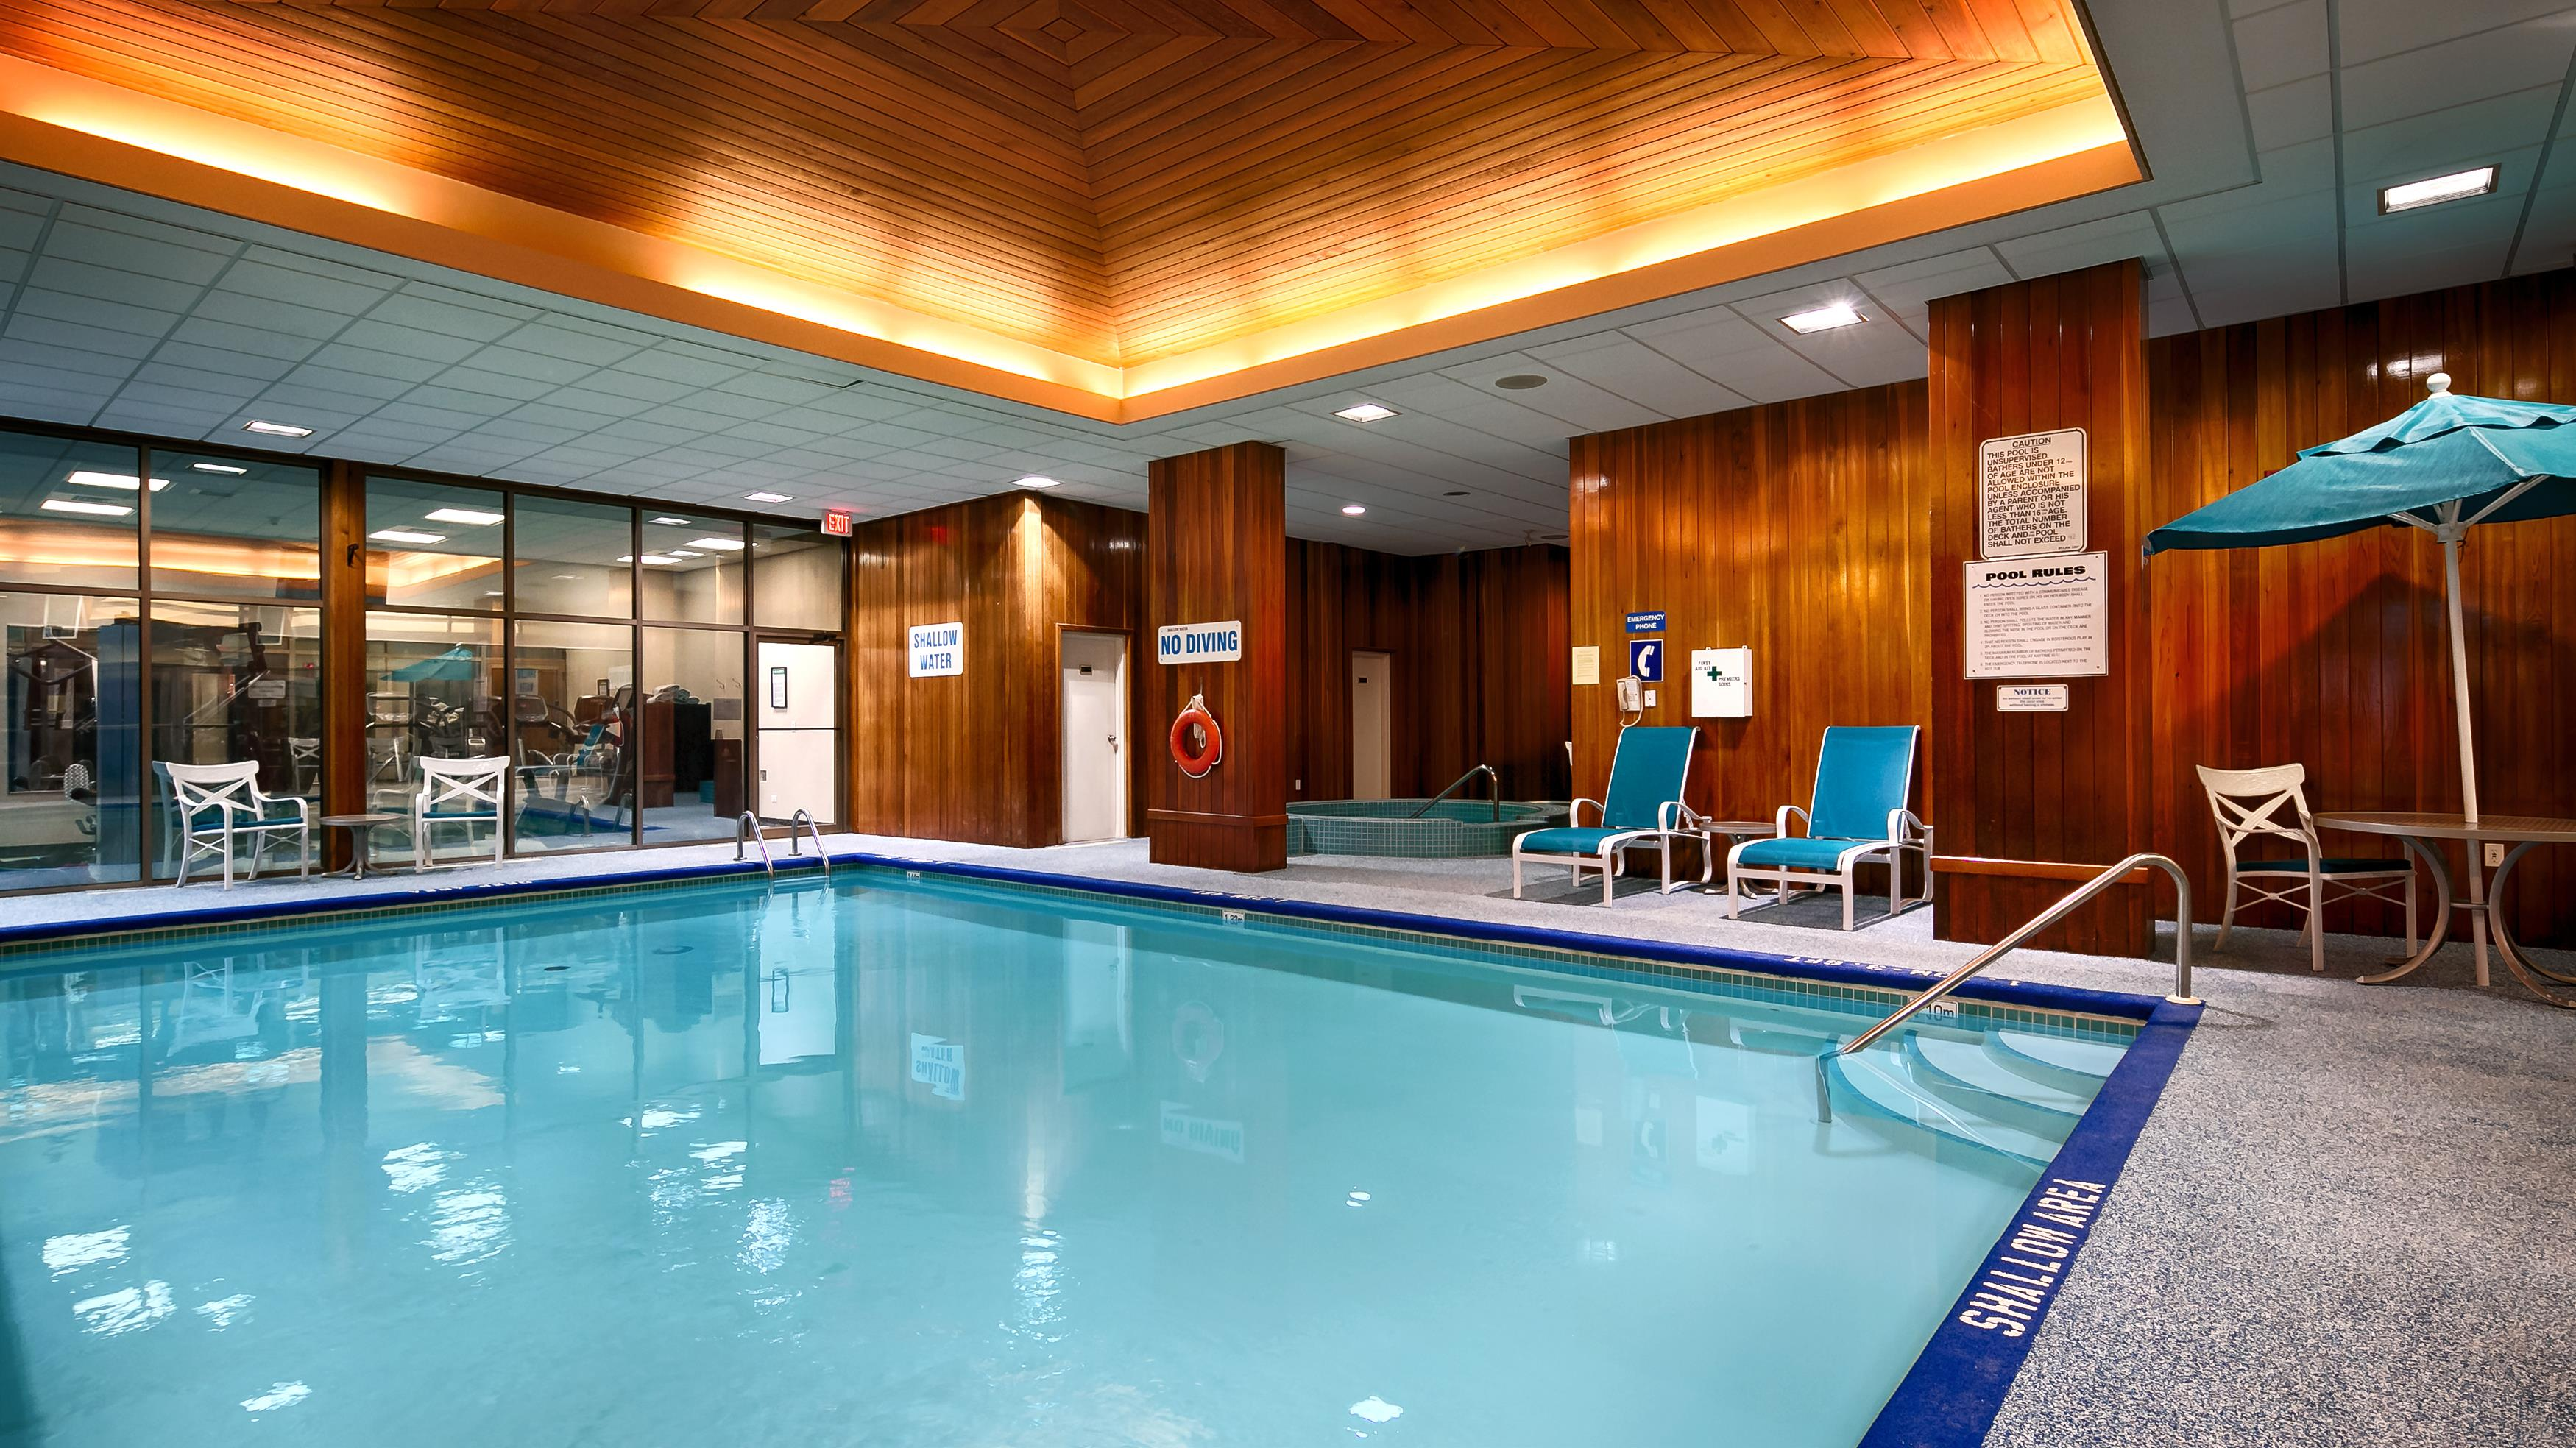 Best western plus the arden park hotel stratford on ourbis - Stratford swimming pool opening times ...